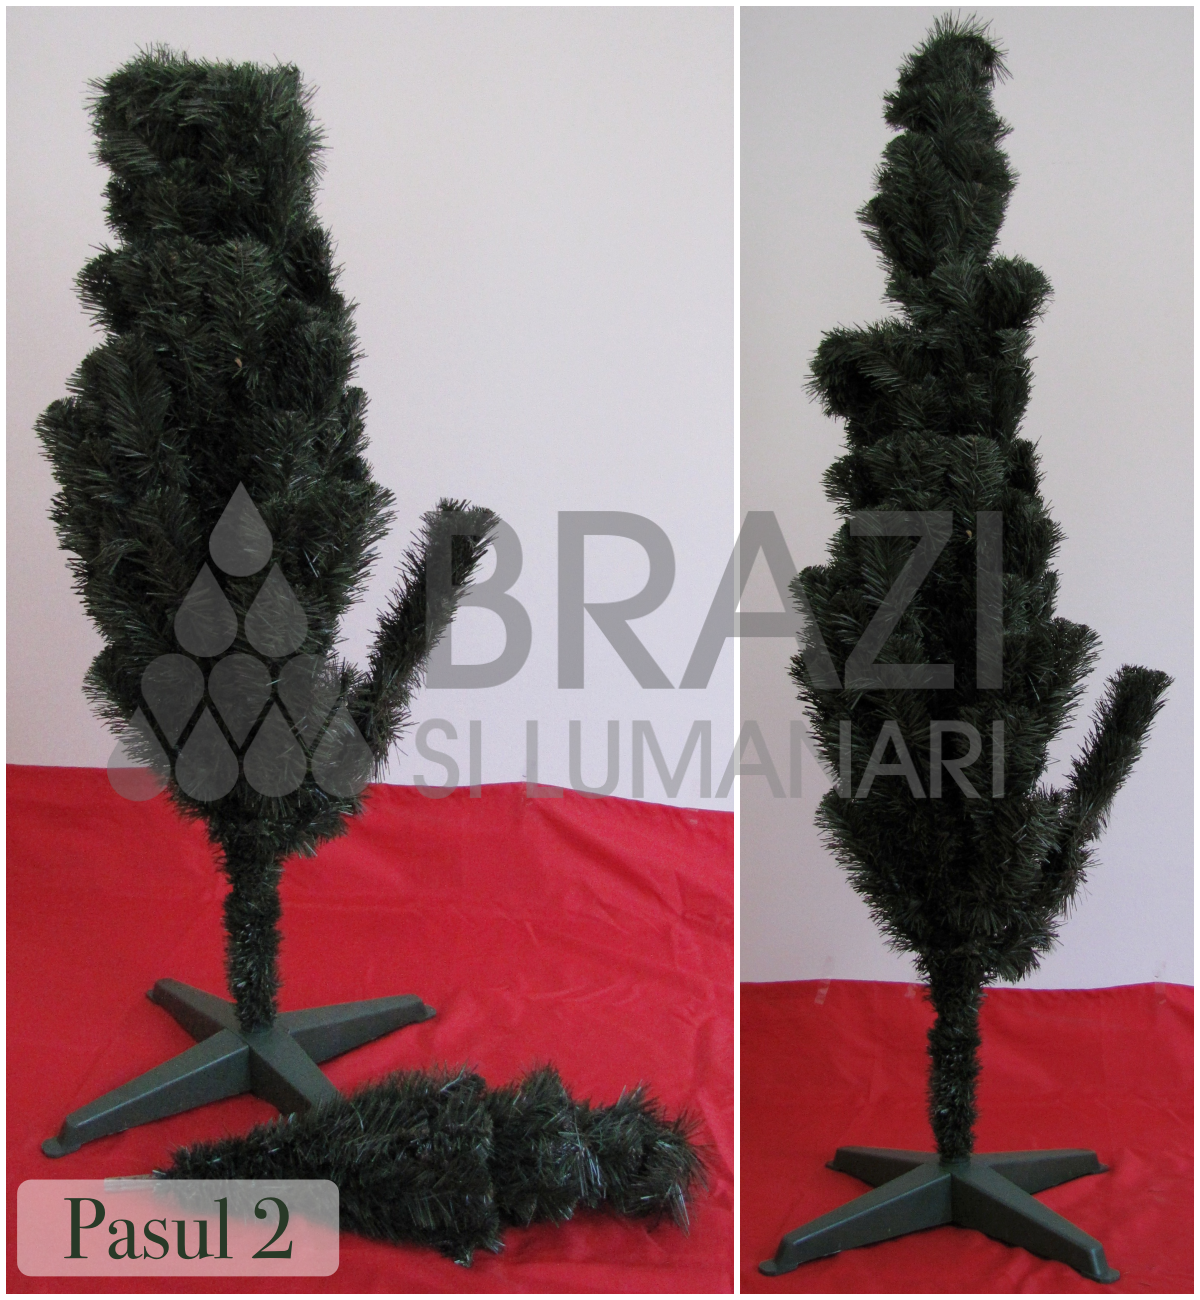 Brad artificial pin verde 180cm - Pasul 2